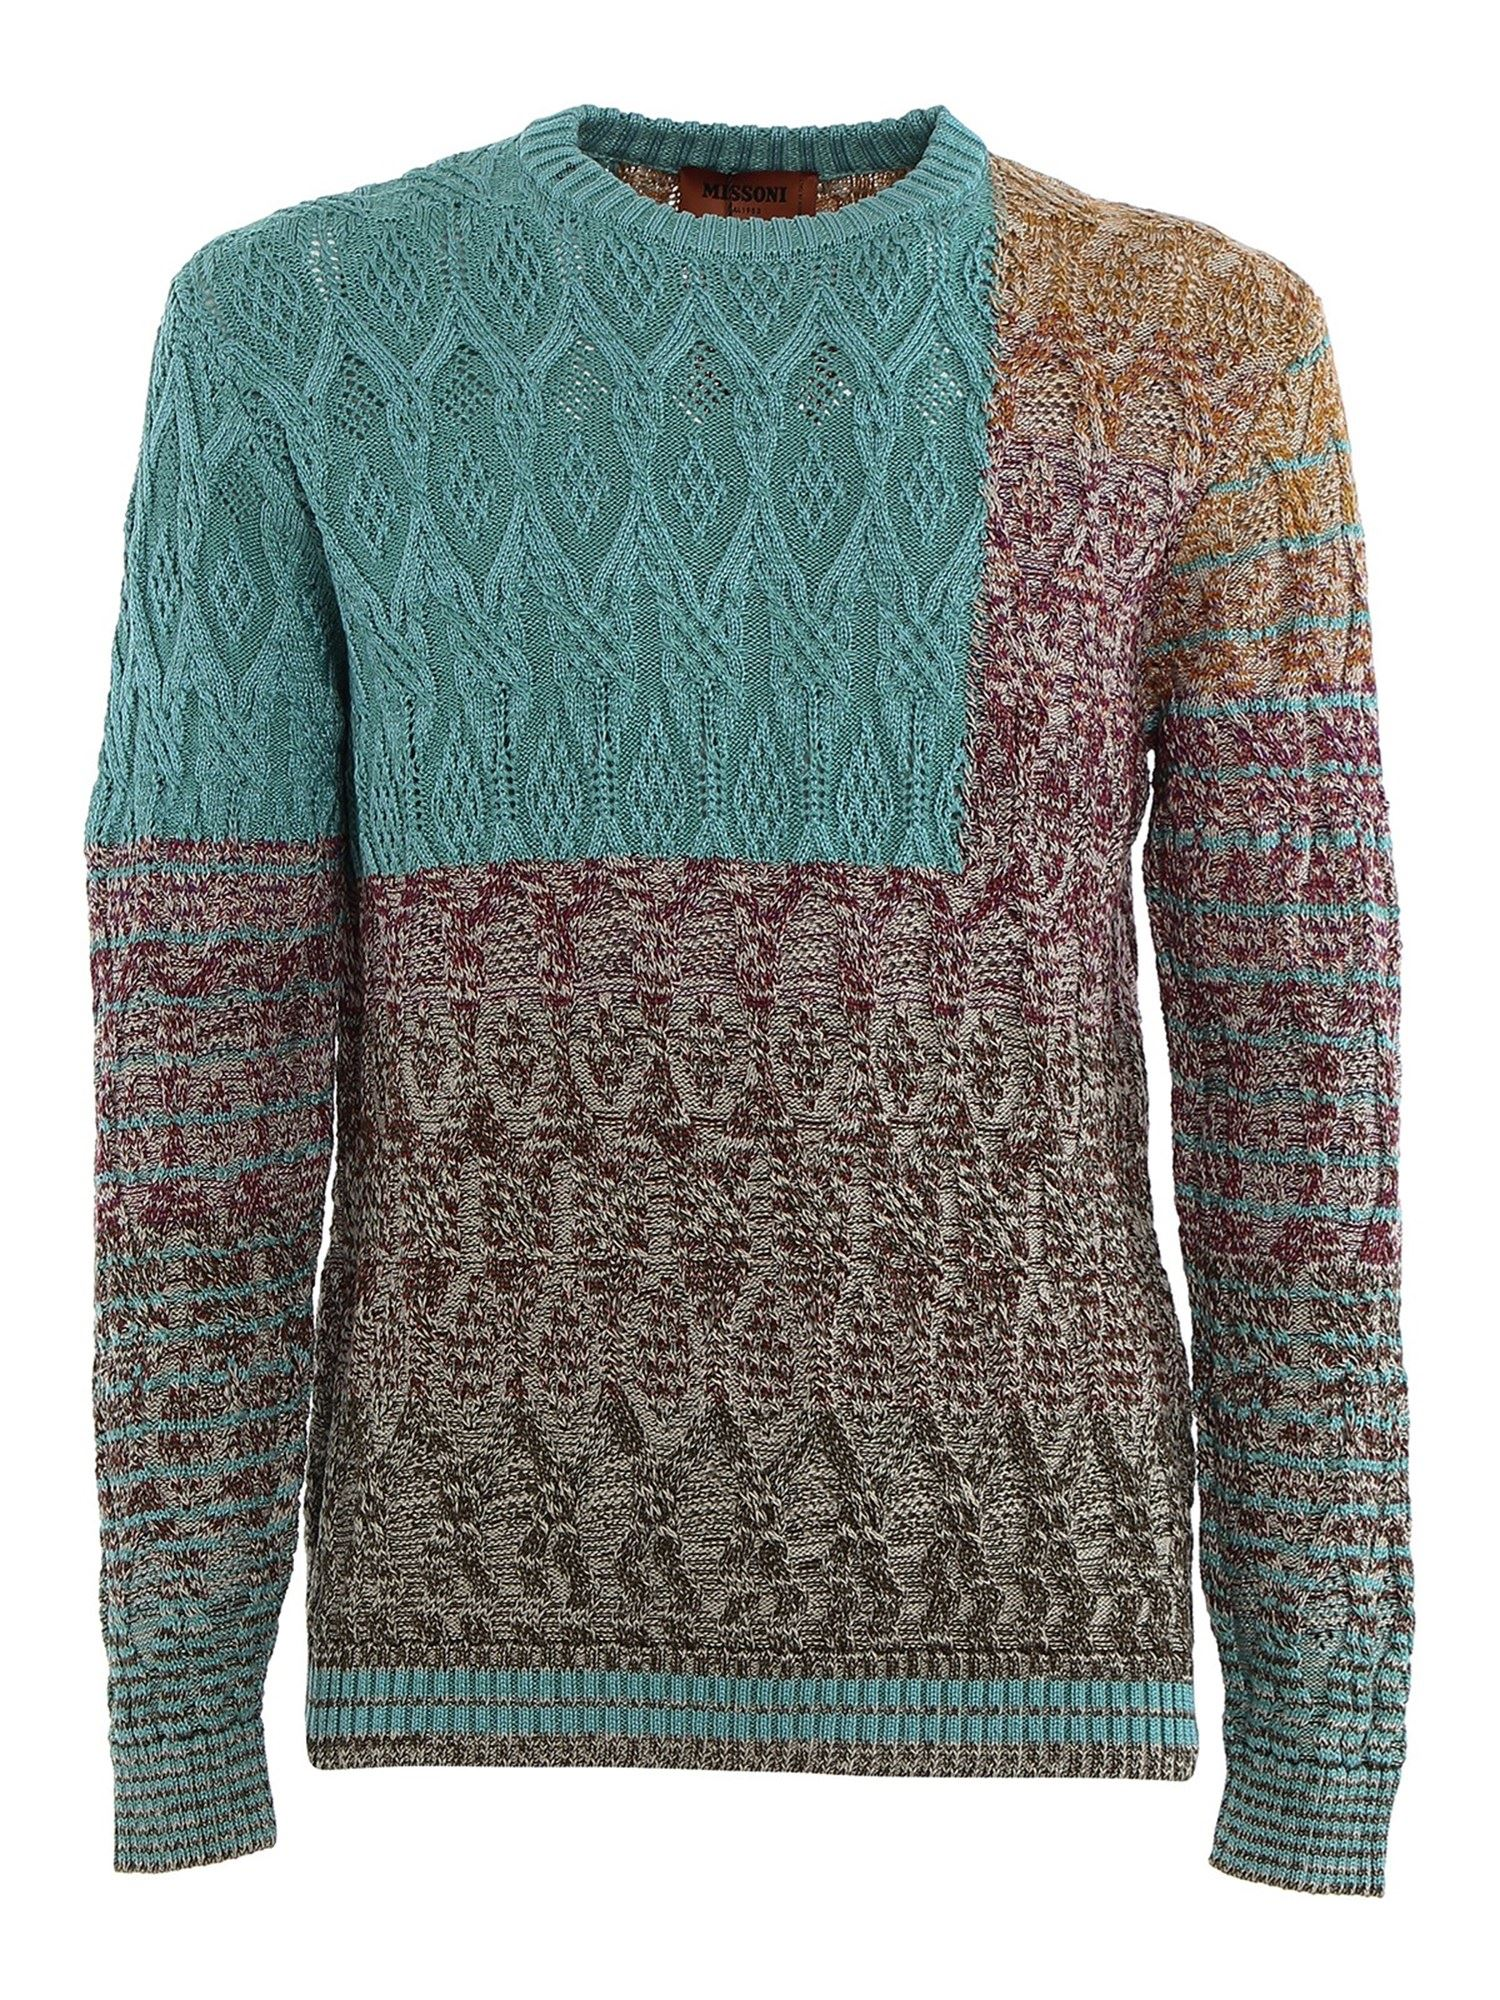 Missoni Knits COTTON PATCHWORK JUMPER IN MULTICOLOR